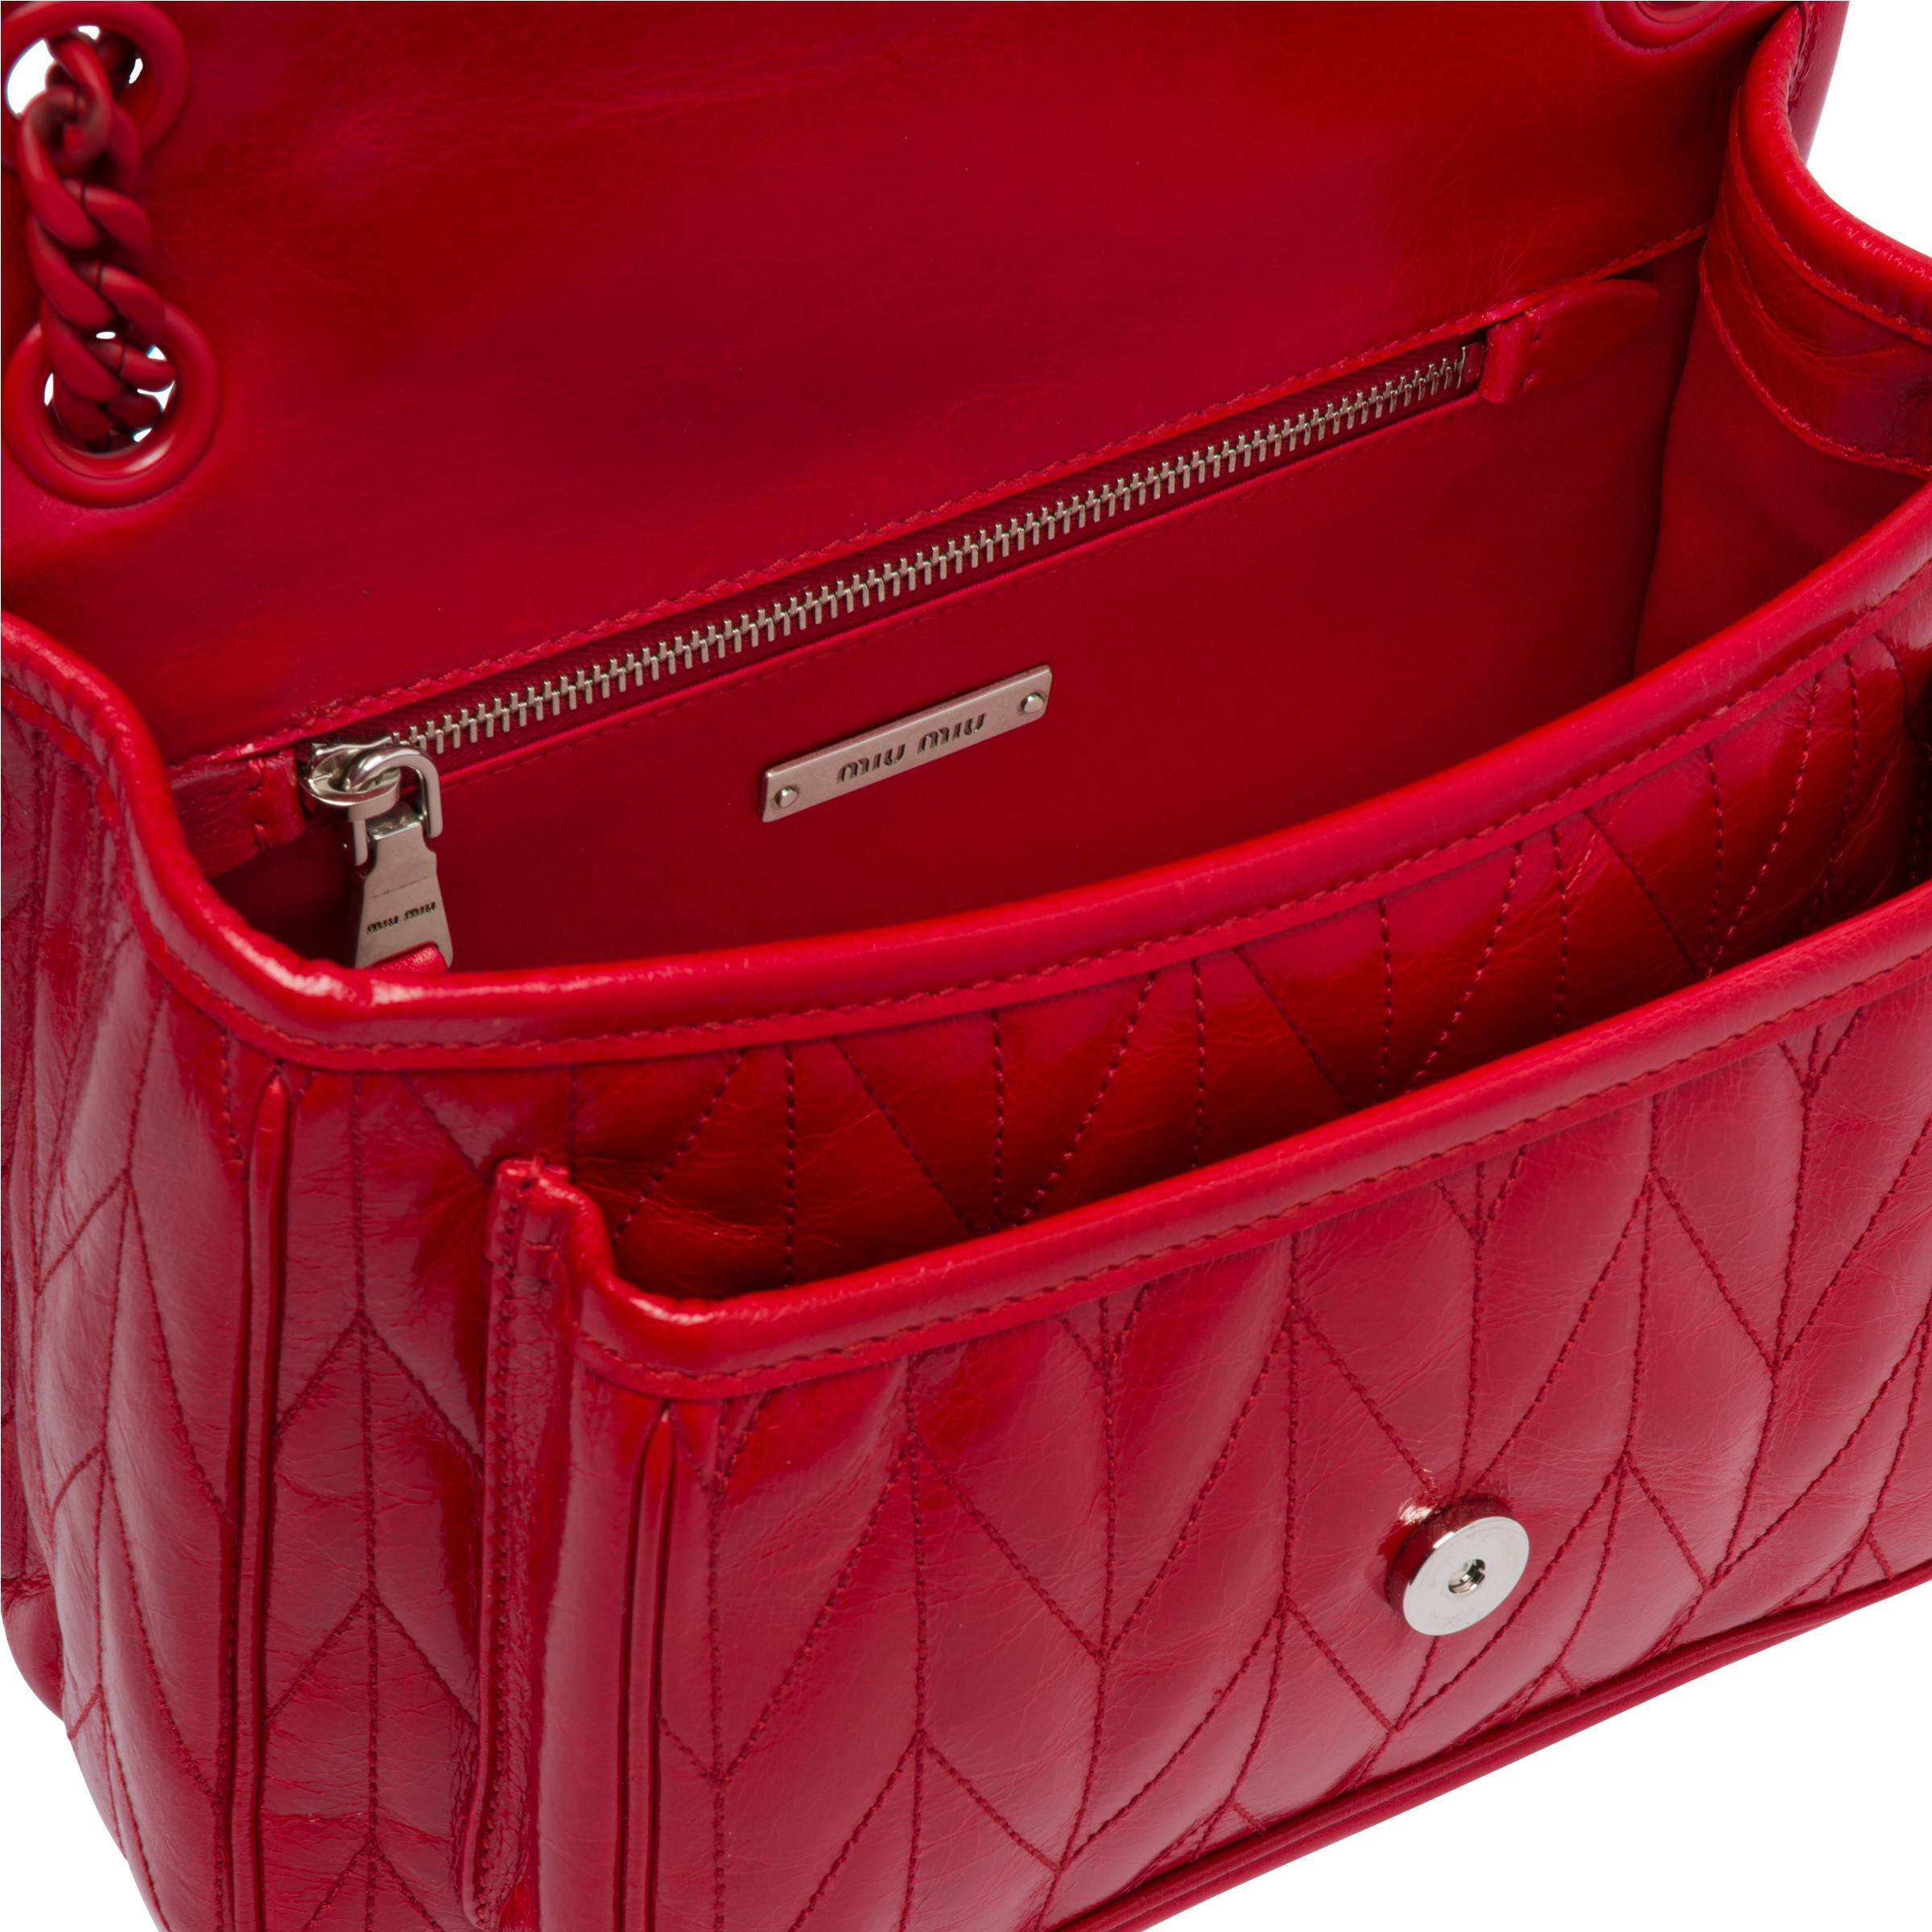 Quilted Shiny Leather Shoulder Bag Women Red 6